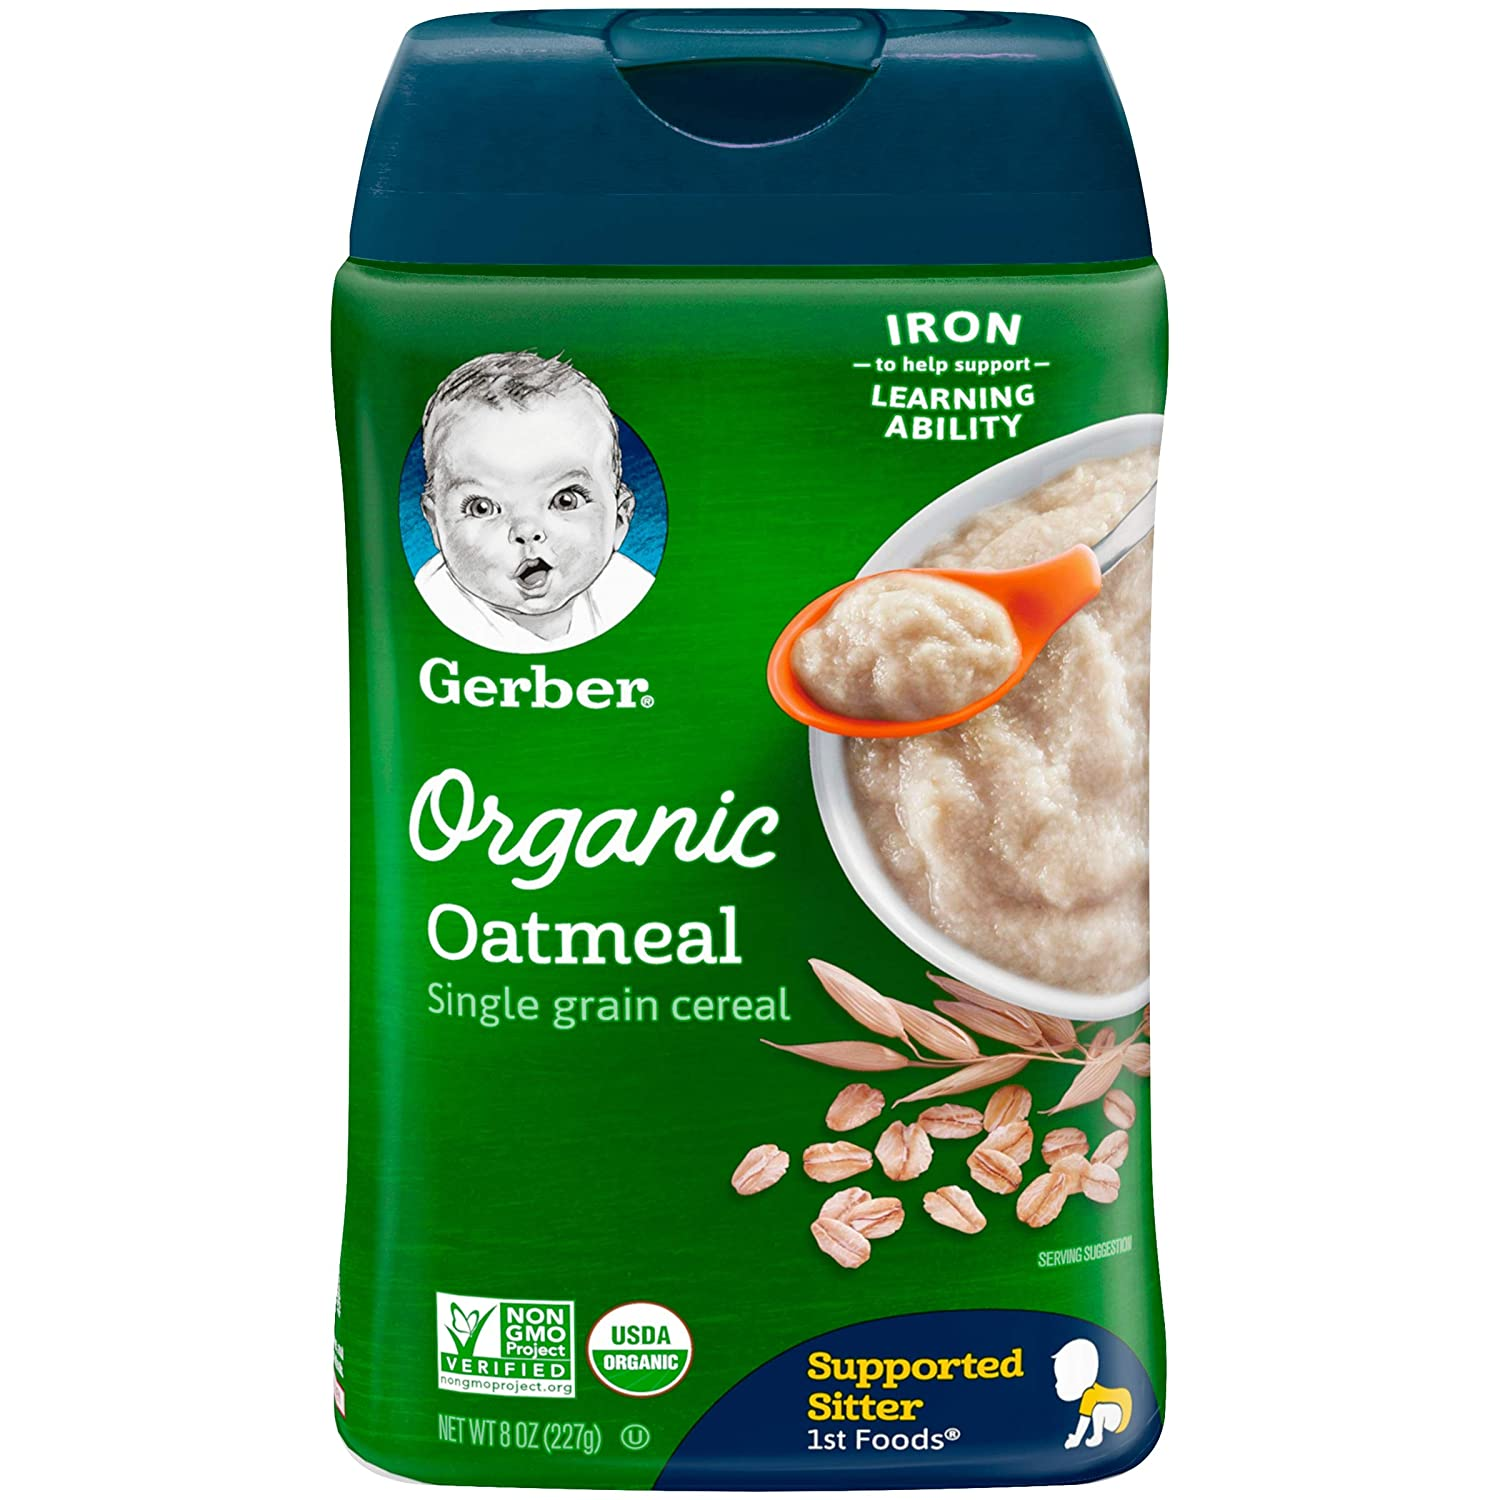 Gerber Baby Cereal, 1st Foods, Single-Grain Oatmeal, 8 Ounce (Pack of 1)